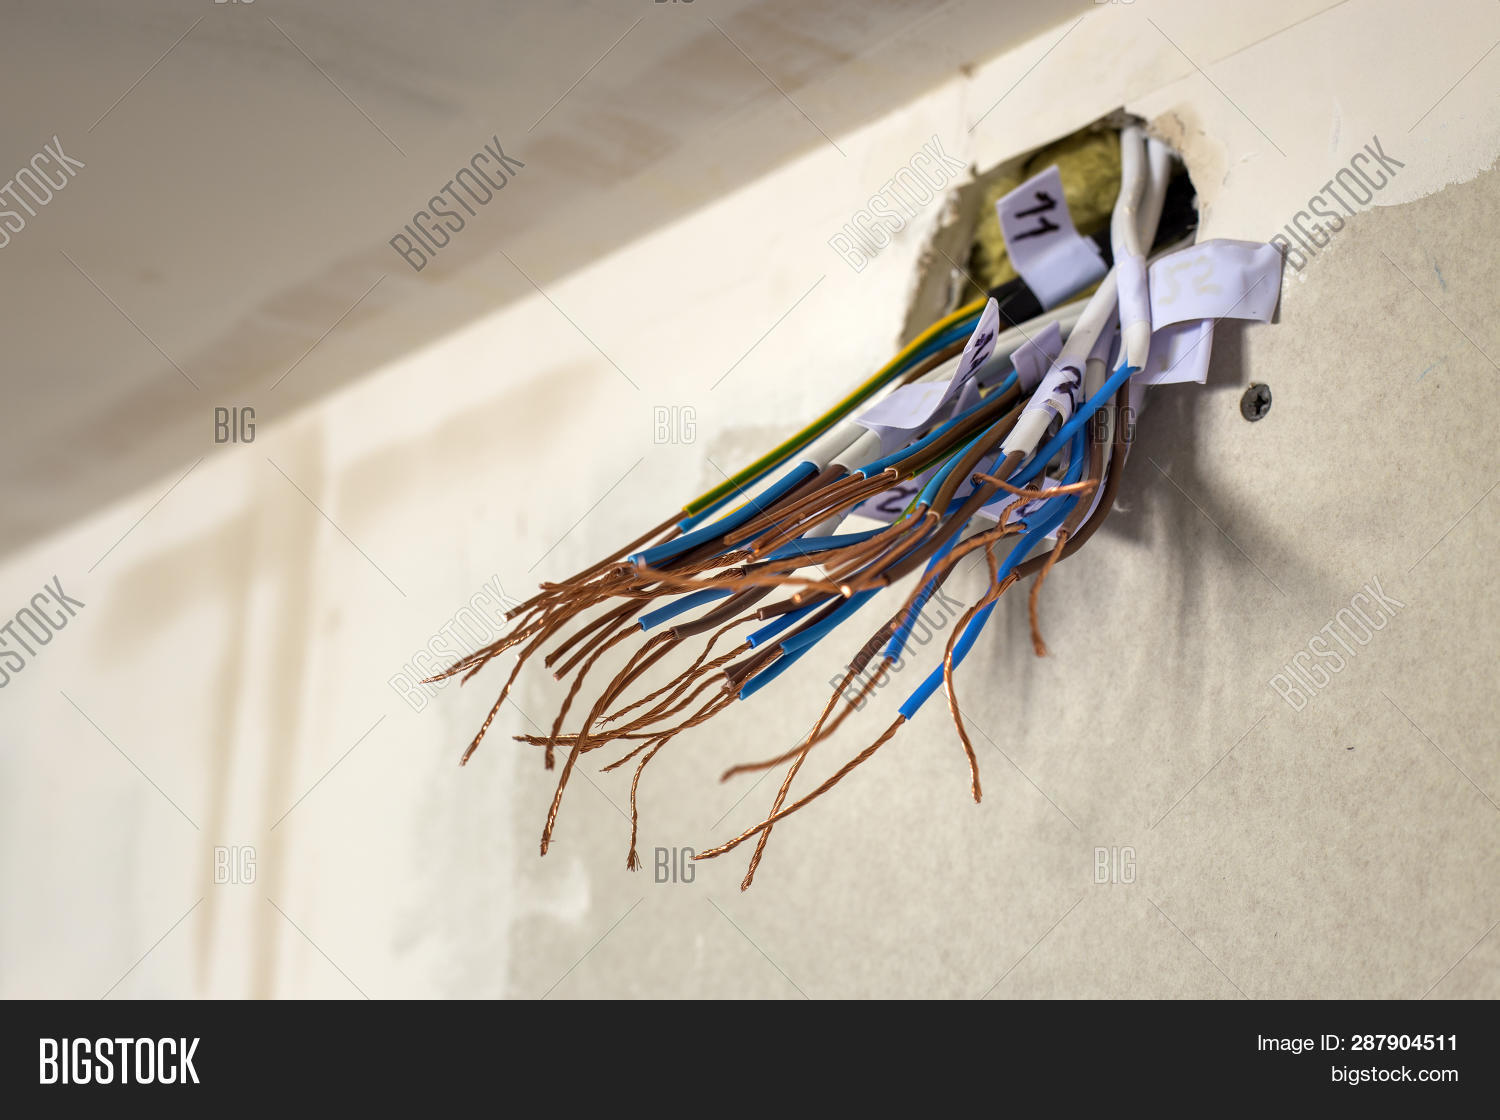 hight resolution of electrical exposed connected wires protruding from socket on white wall electrical wiring installat